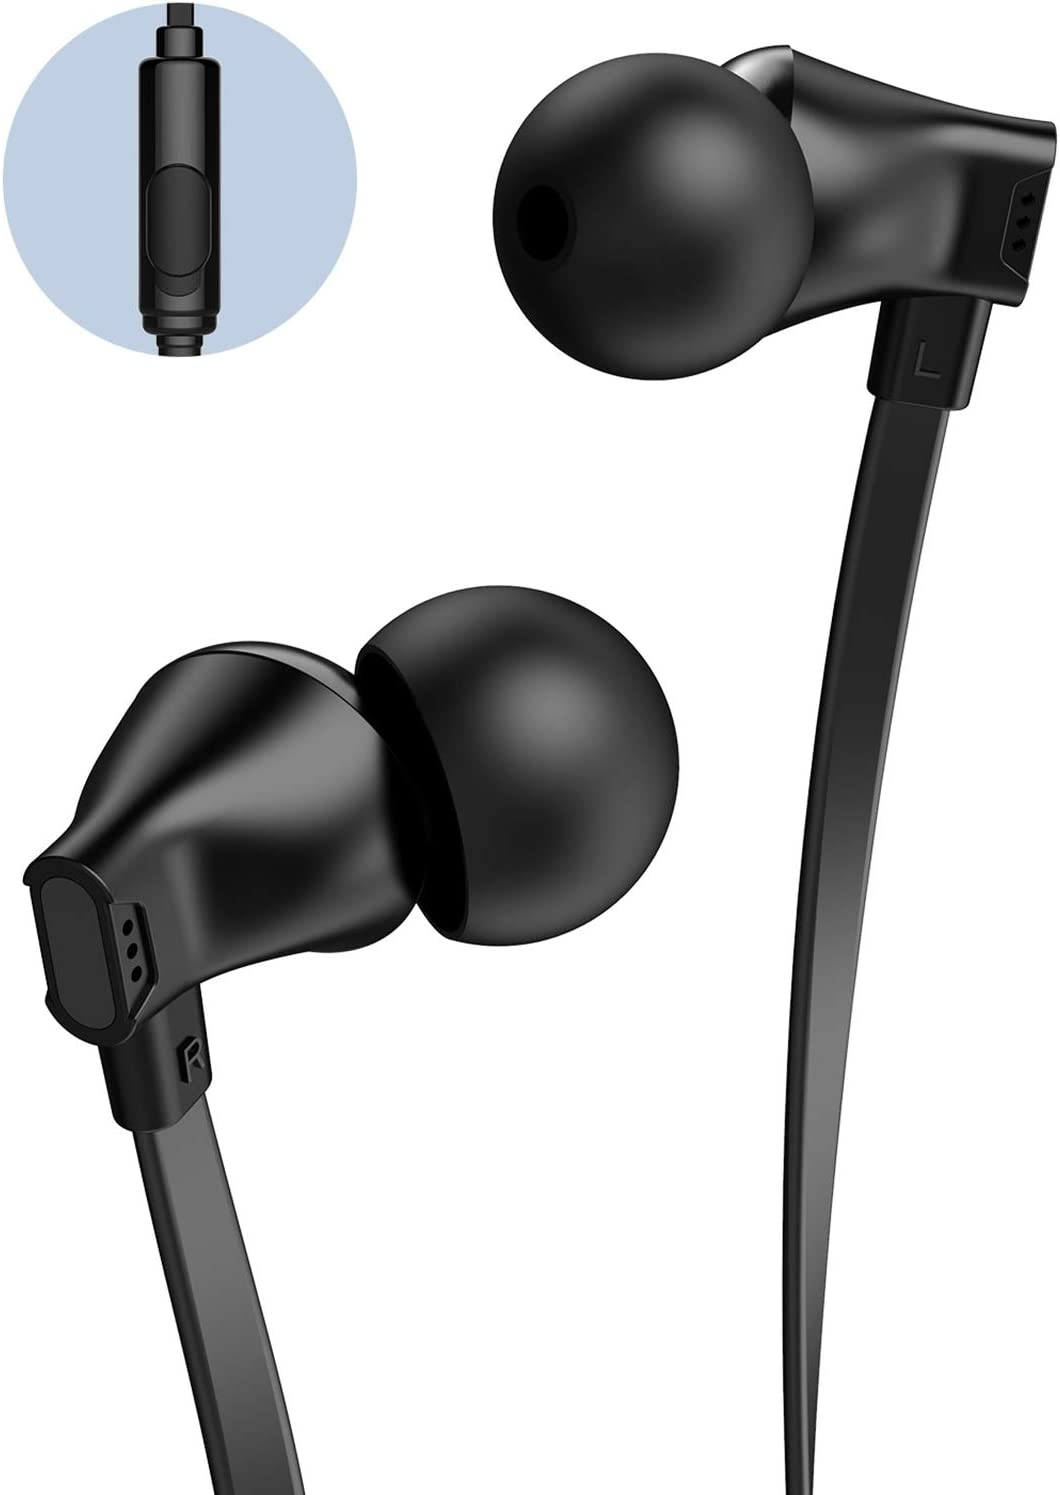 Earbuds with Microphone, Vogek Earphones Noise Isolating, in-Ear Headphones with HiFi Stereo & Powerful Bass 3.5mm Interface Compatible with iPhone and Android Smartphones, iPod, iPad, MP3 Players